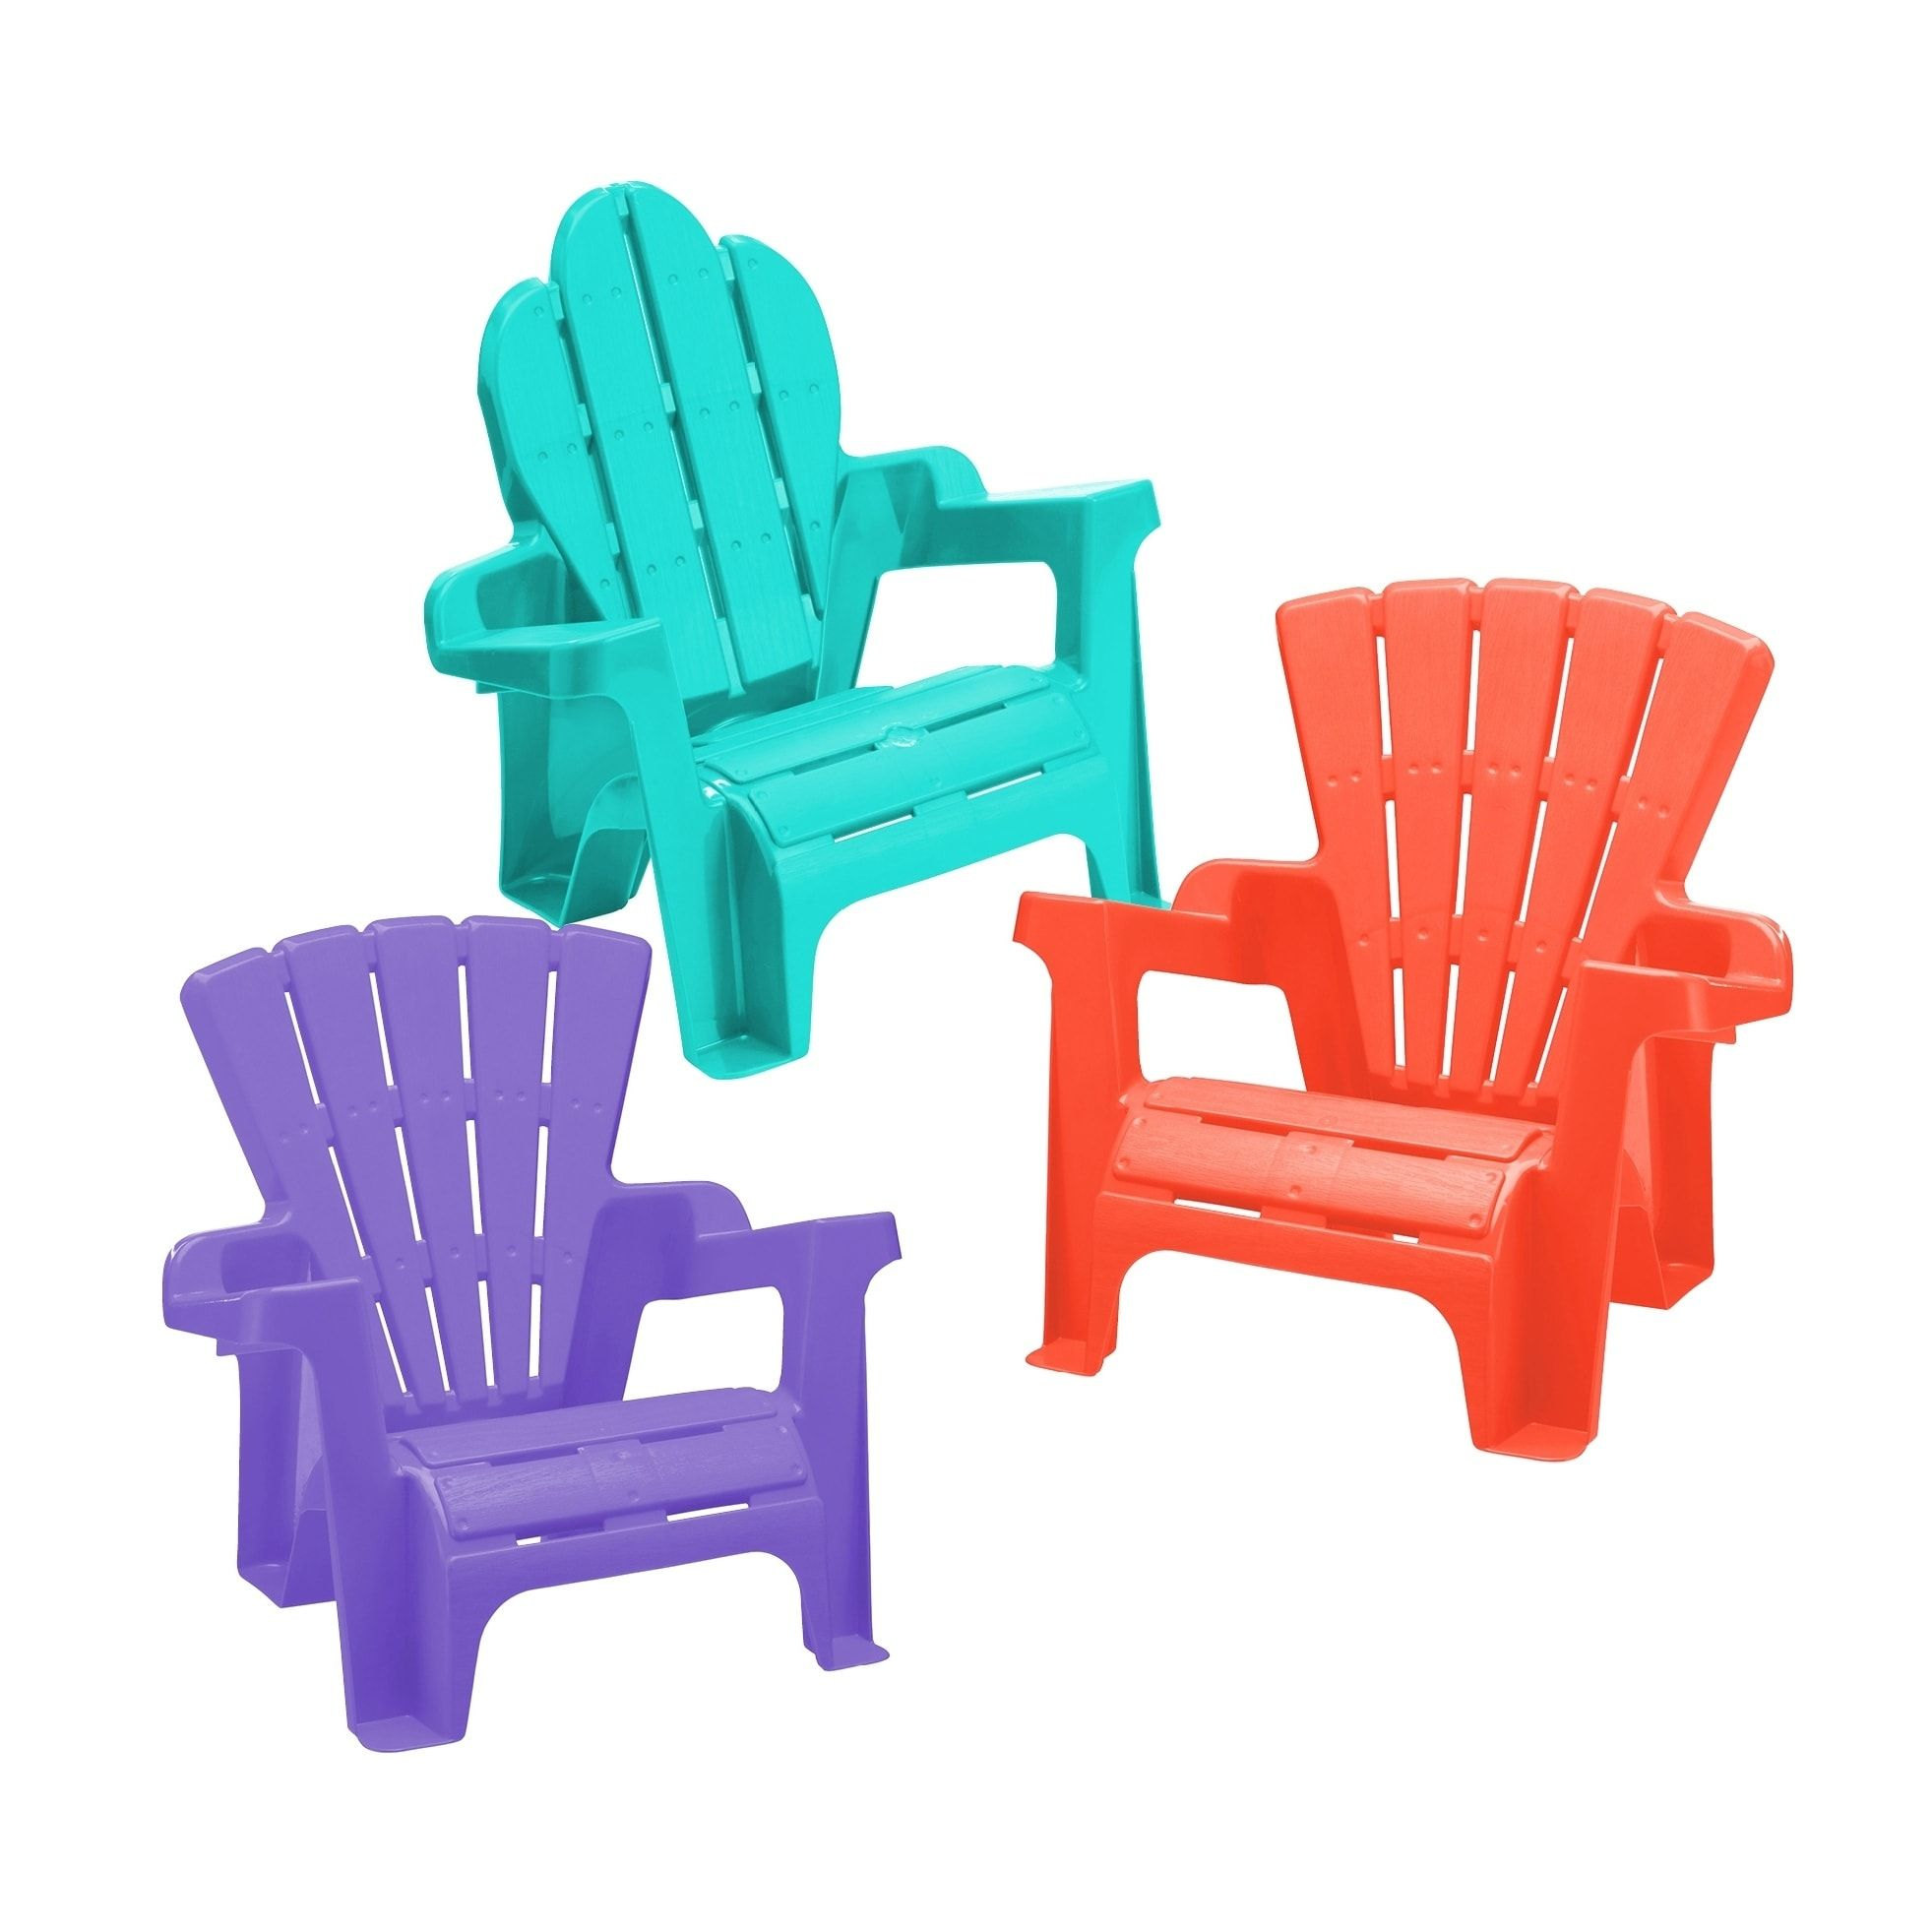 Super Adirondack Chair Assortment Case Of 6 Chairs Blue 2 4 Andrewgaddart Wooden Chair Designs For Living Room Andrewgaddartcom